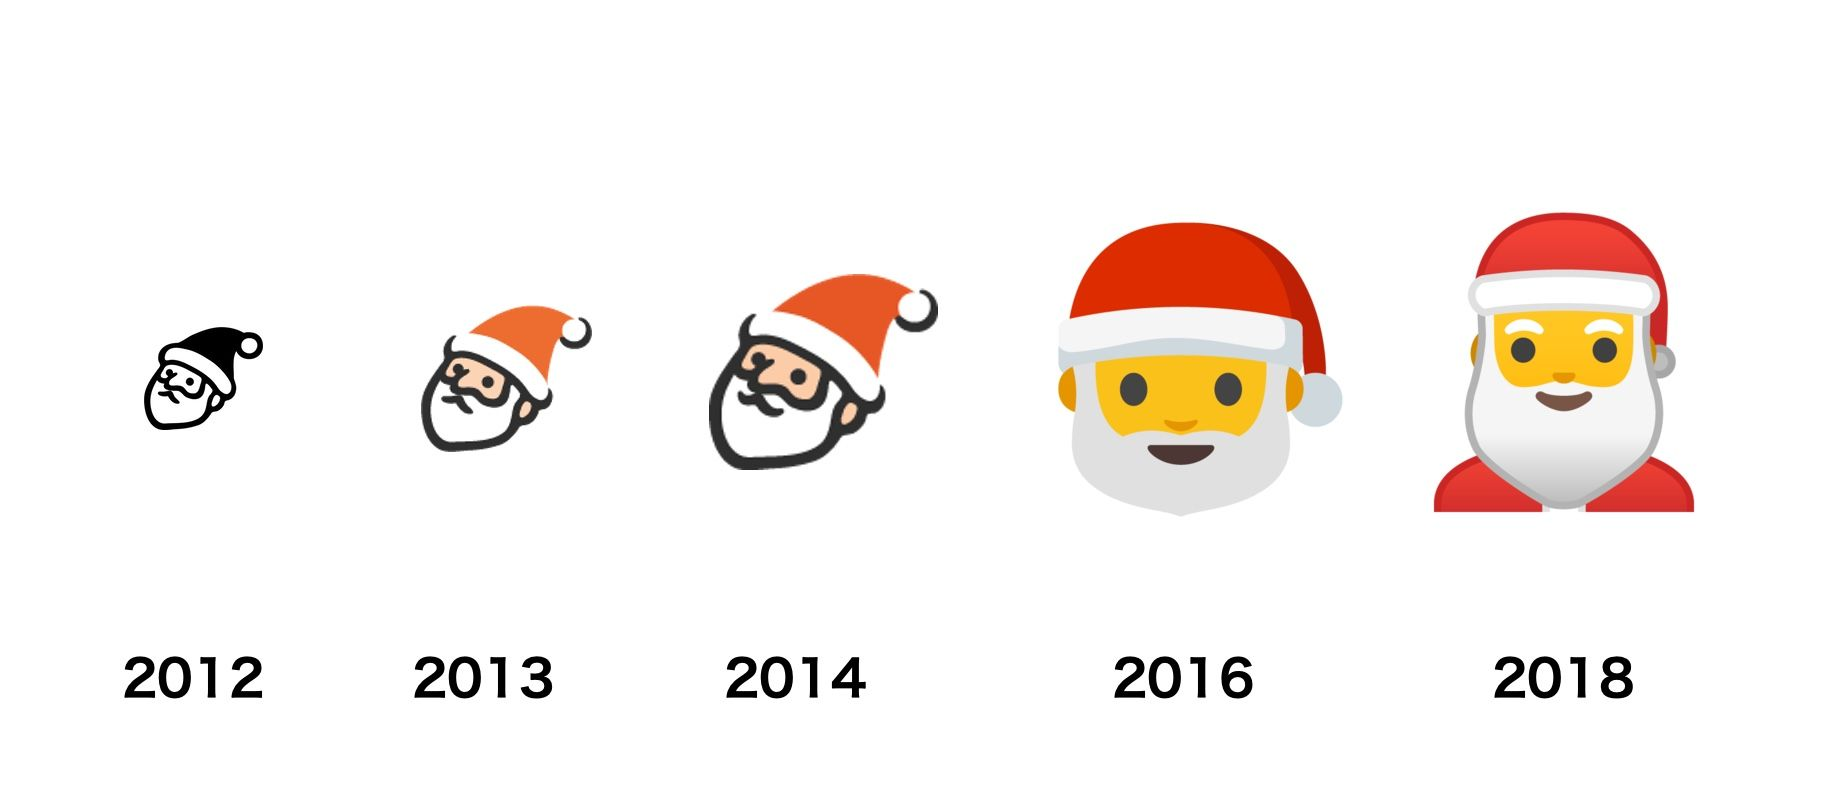 Christmas Emojis The Comprehensive Guide